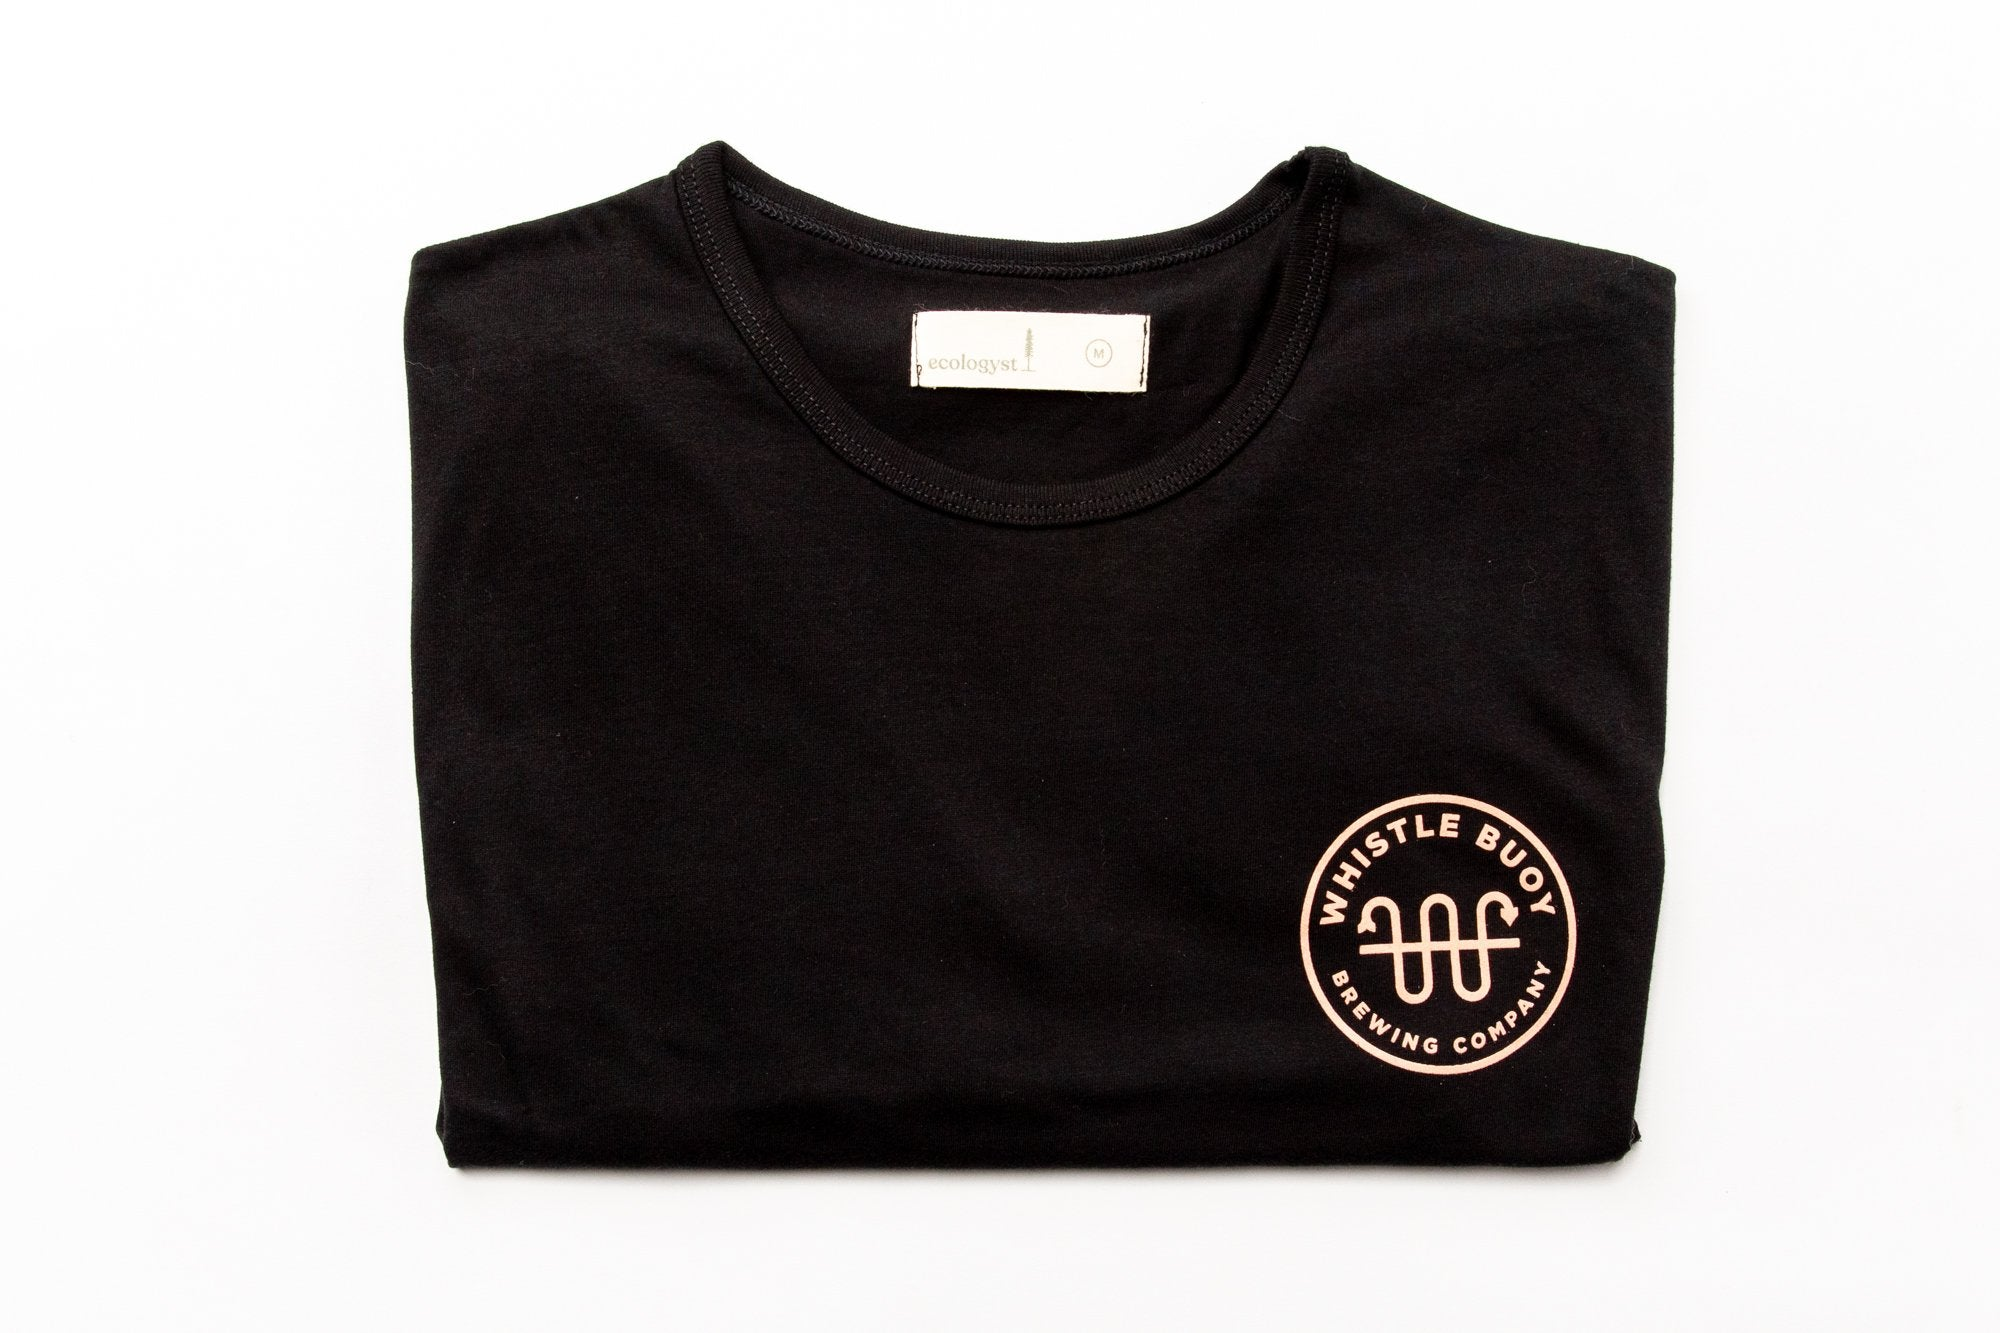 Whistle Buoy Black Emblem T w/ aloe logo - studio shot